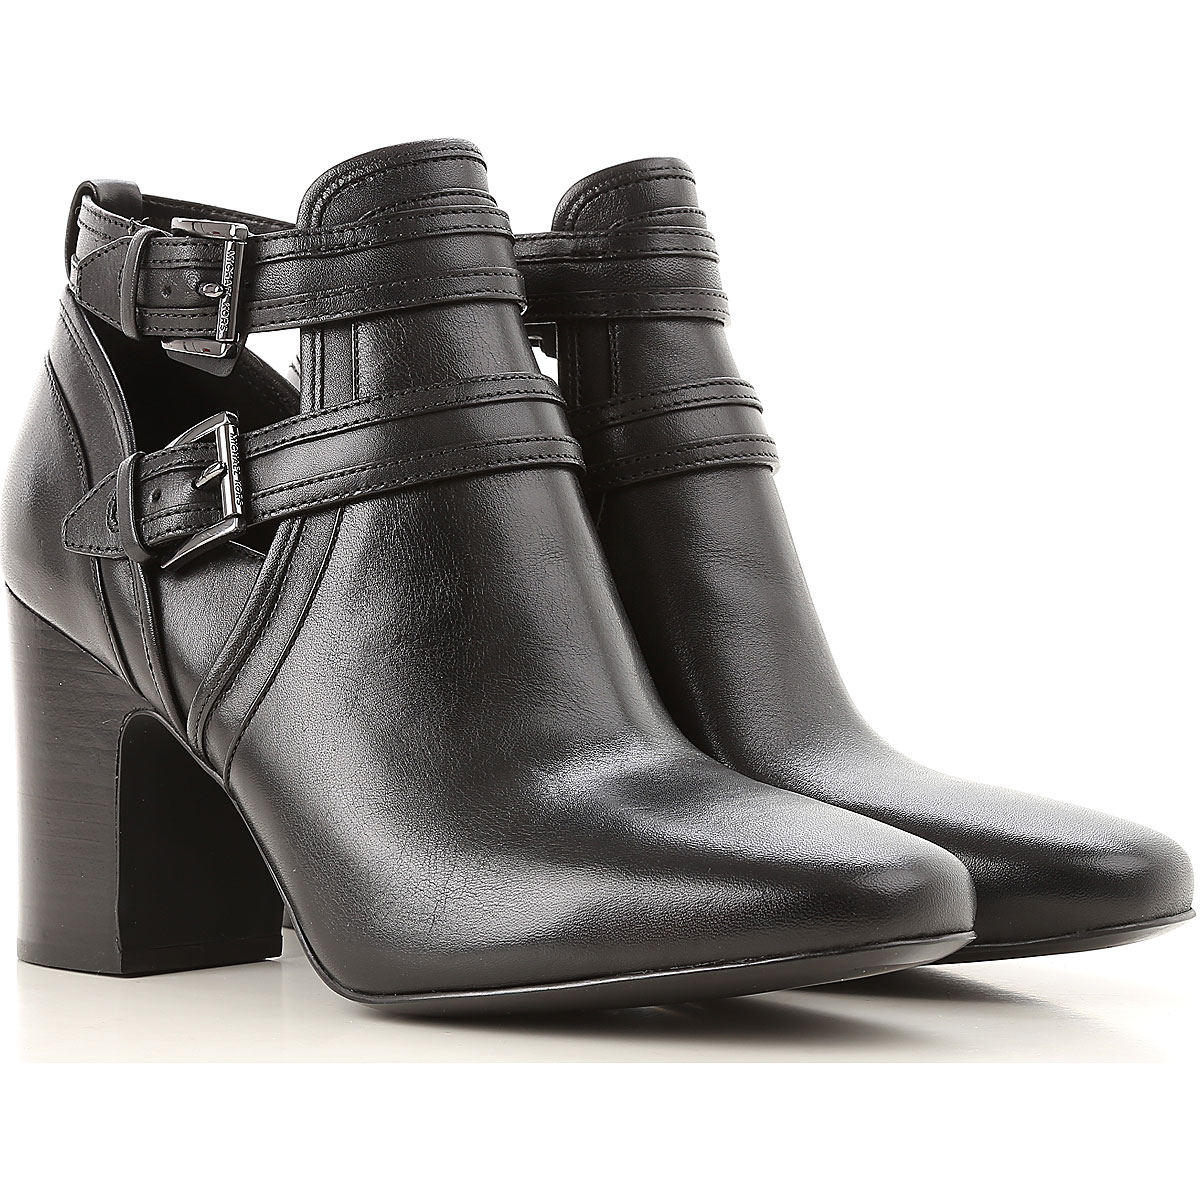 Michael Kors Boots for Women, Booties On Sale in Outlet, Black, Leather, 2019, 10 6.5 8.5